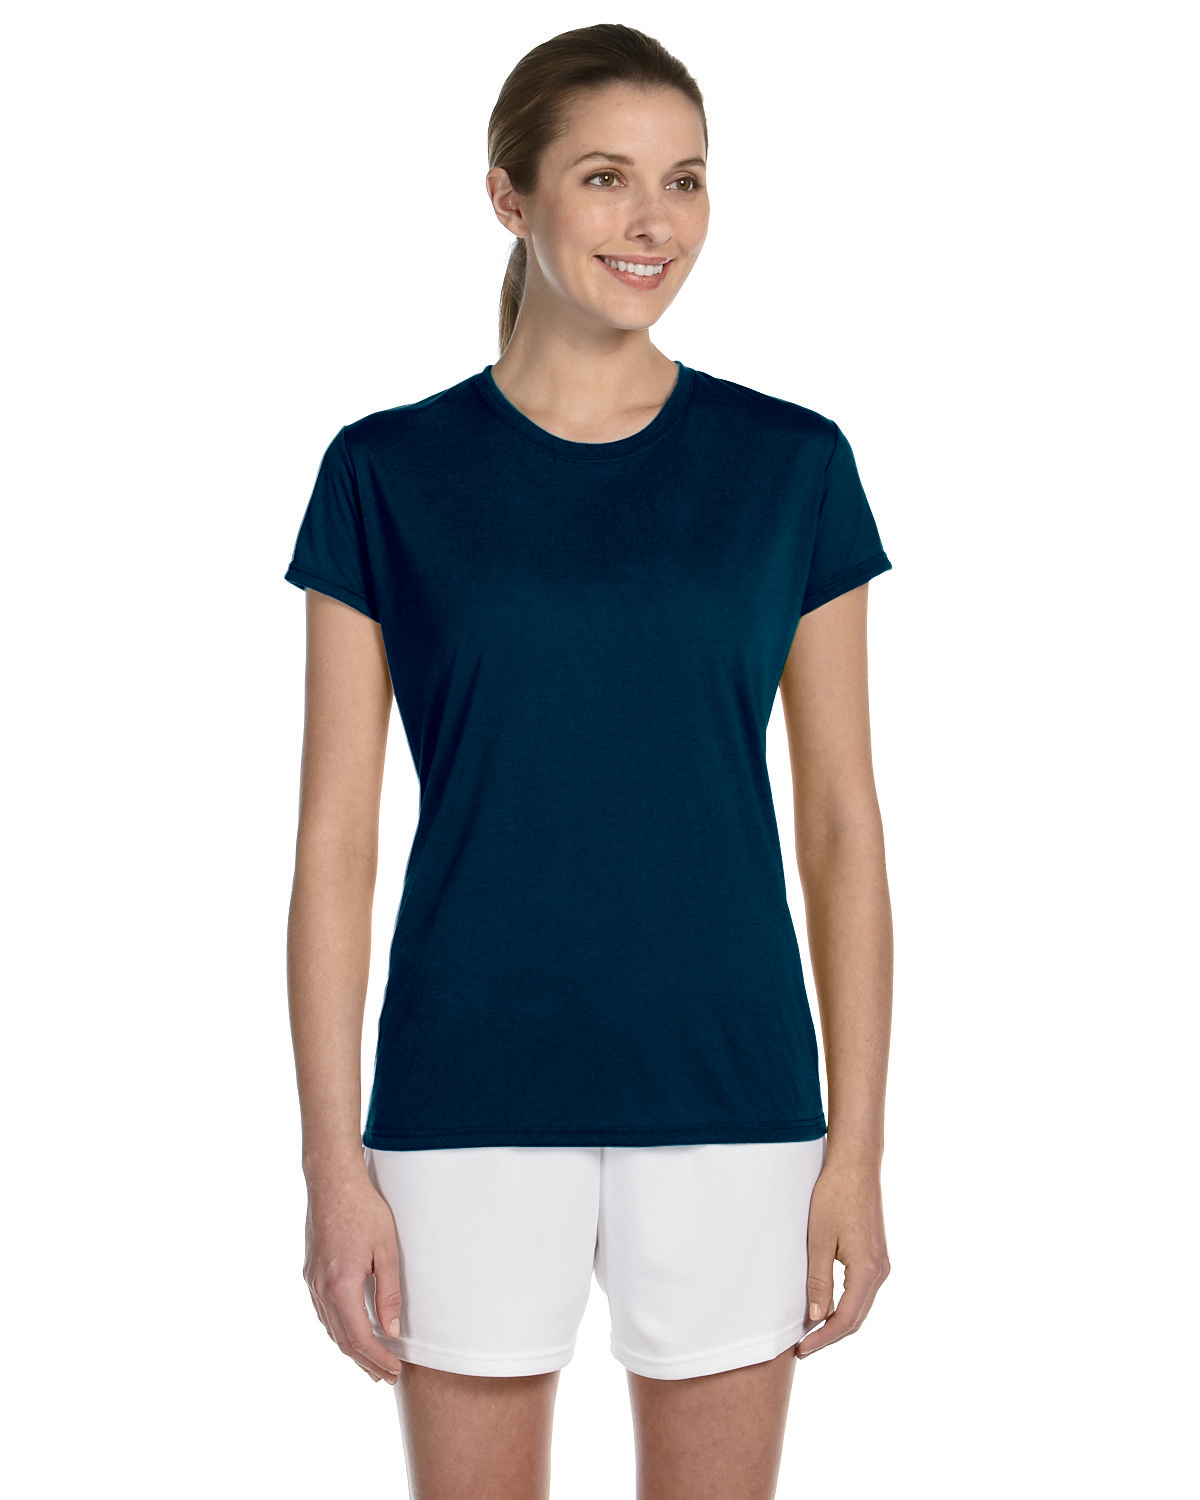 Gildan performance ladies 4 5 oz 100 polyester t shirt for What is a performance t shirt